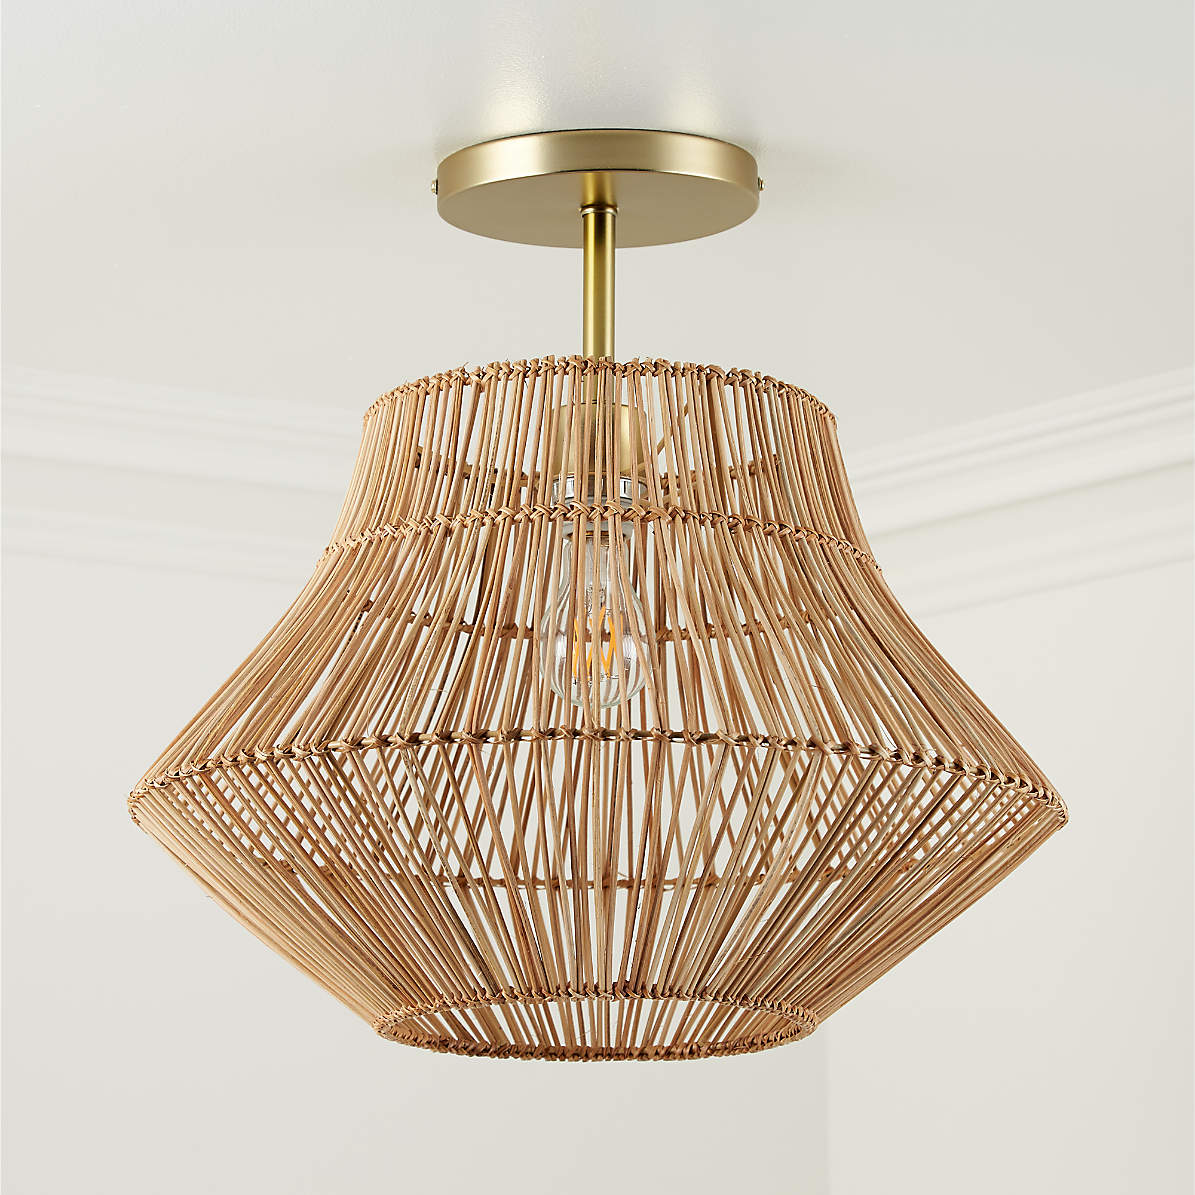 Rattan Ceiling Light Reviews Crate And Barrel Canada